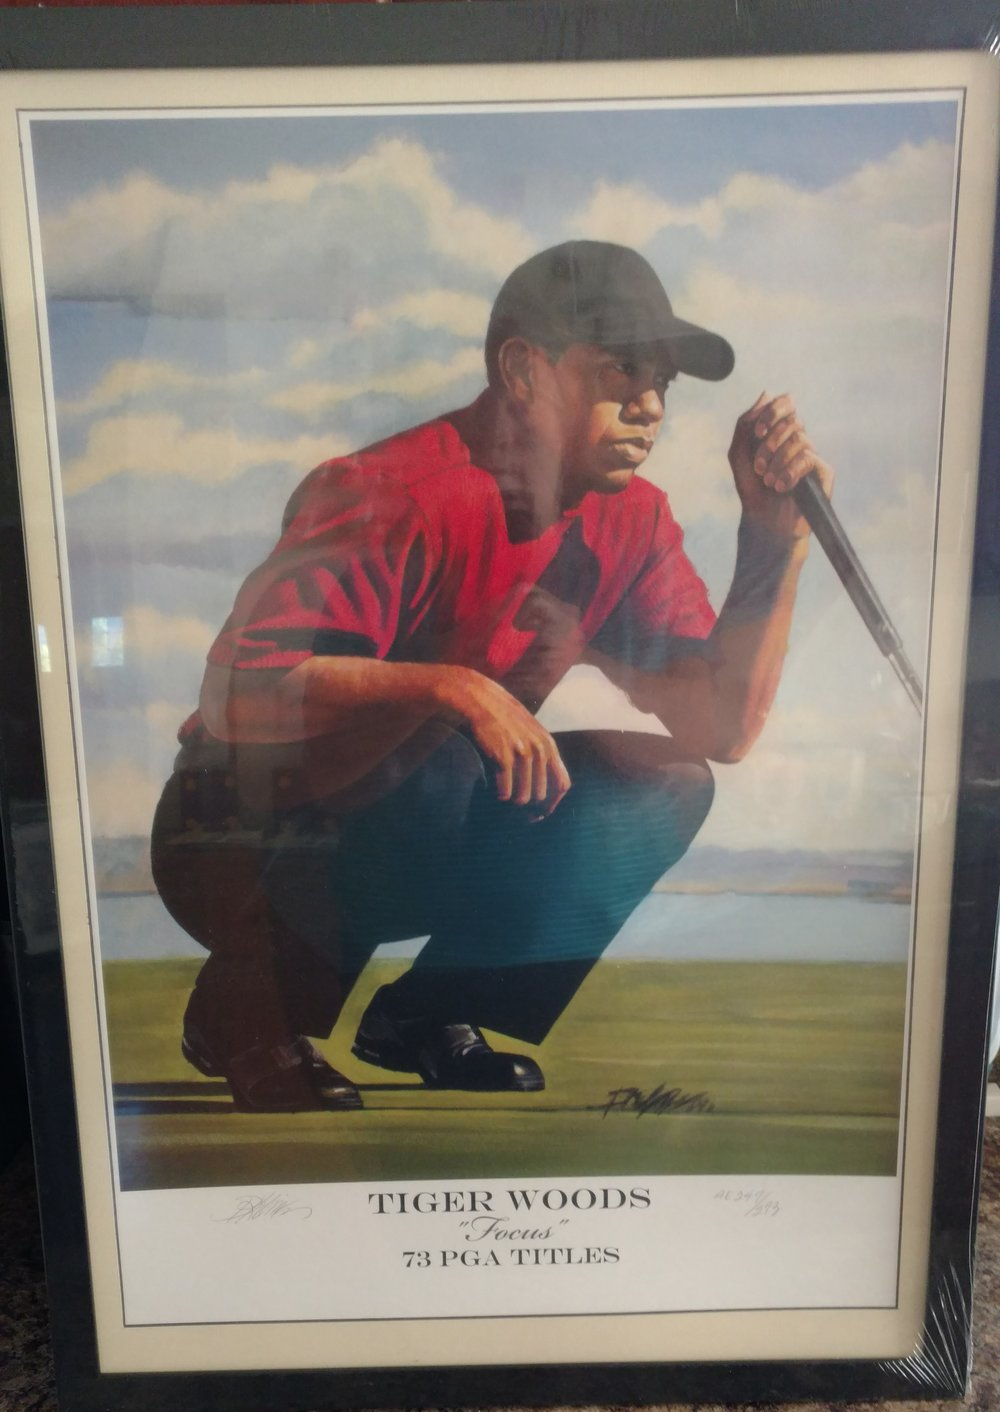 Tiger Woods Lithograph - Donated by Warrior Custom GolfLimited edition artist quality lithograph of an original illustration of Tiger Woods.